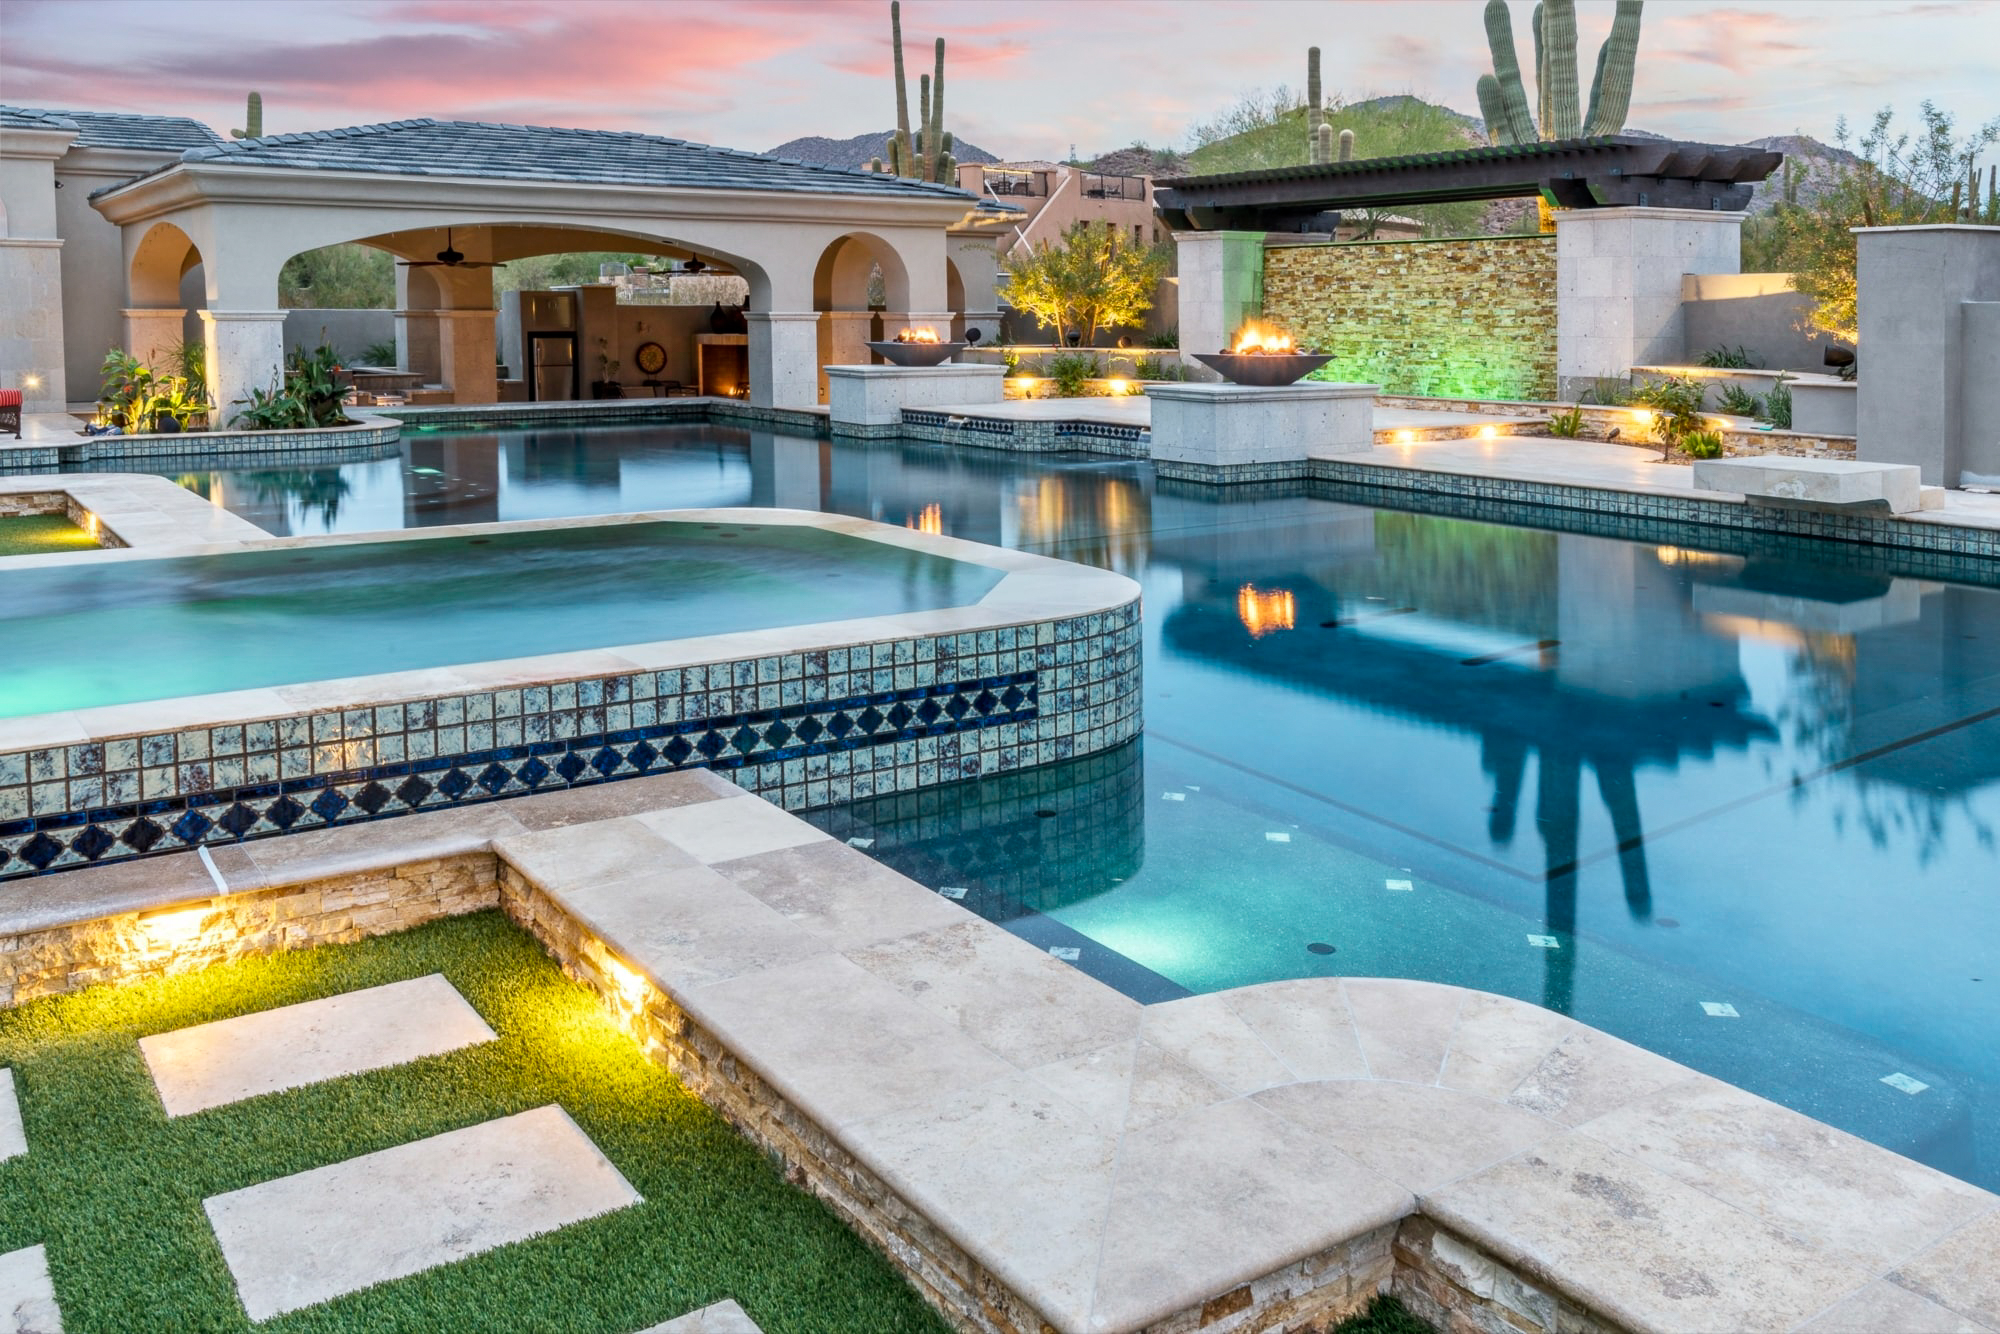 Luxury Pool and Estate Outdoor Living Space | Mesa Arizona ... on Outdoor Living Space Builders Near Me  id=75587